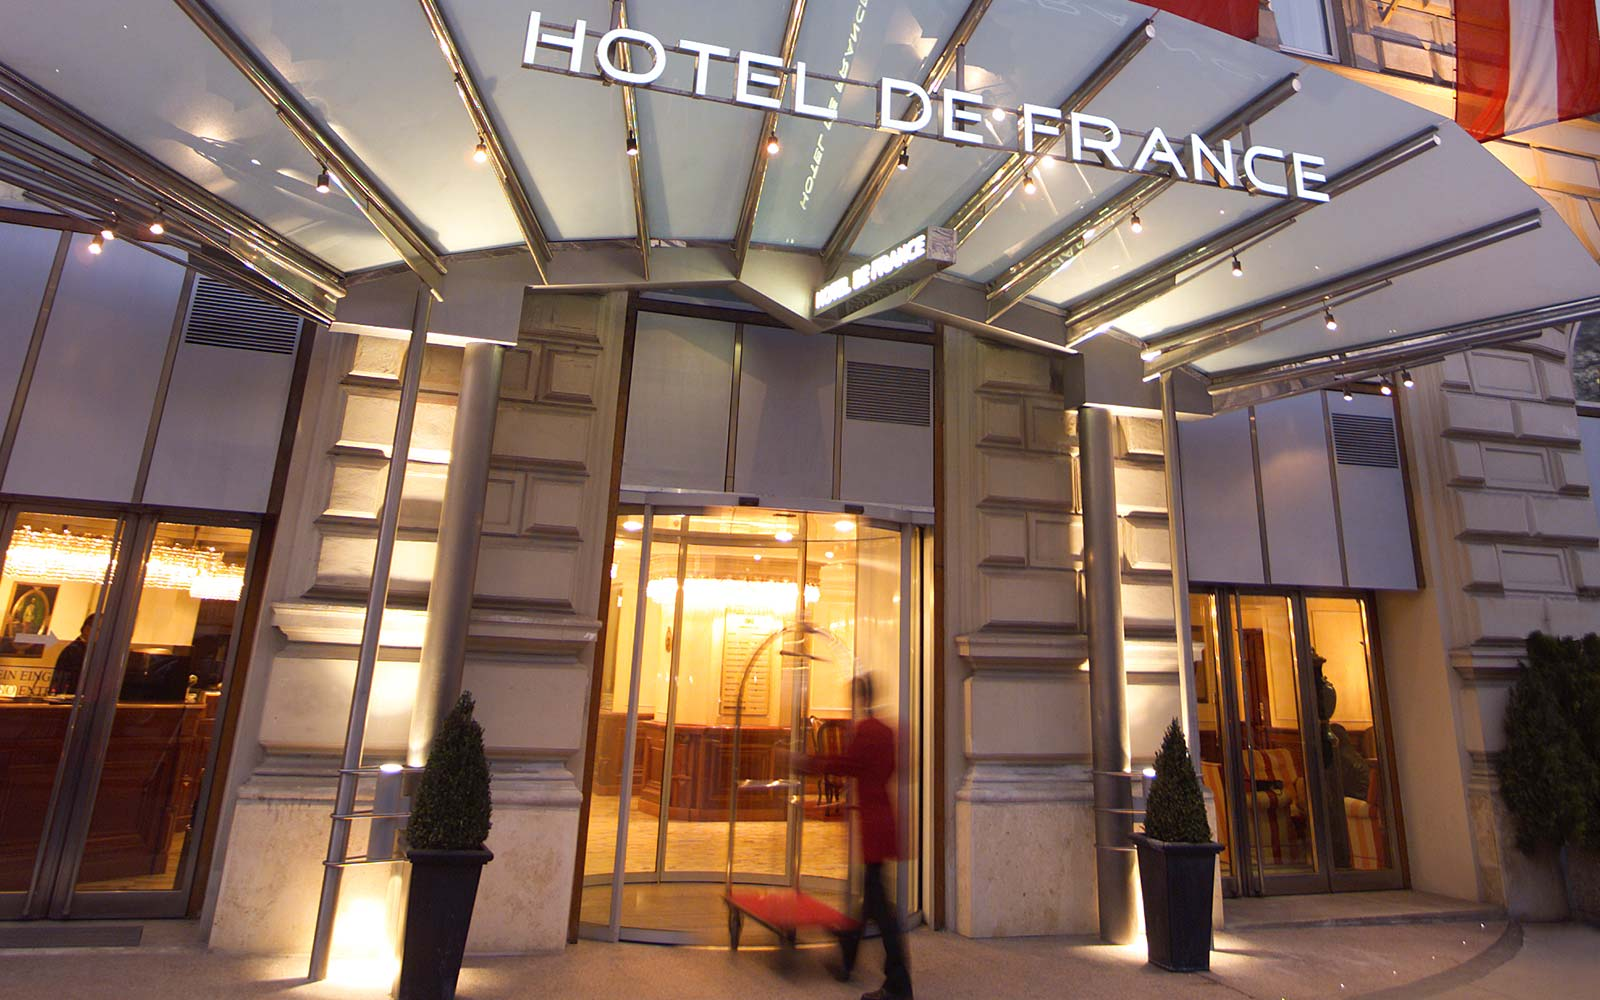 Jobs hotel de france wien gerstner imperial hotels for Recherche hotel france